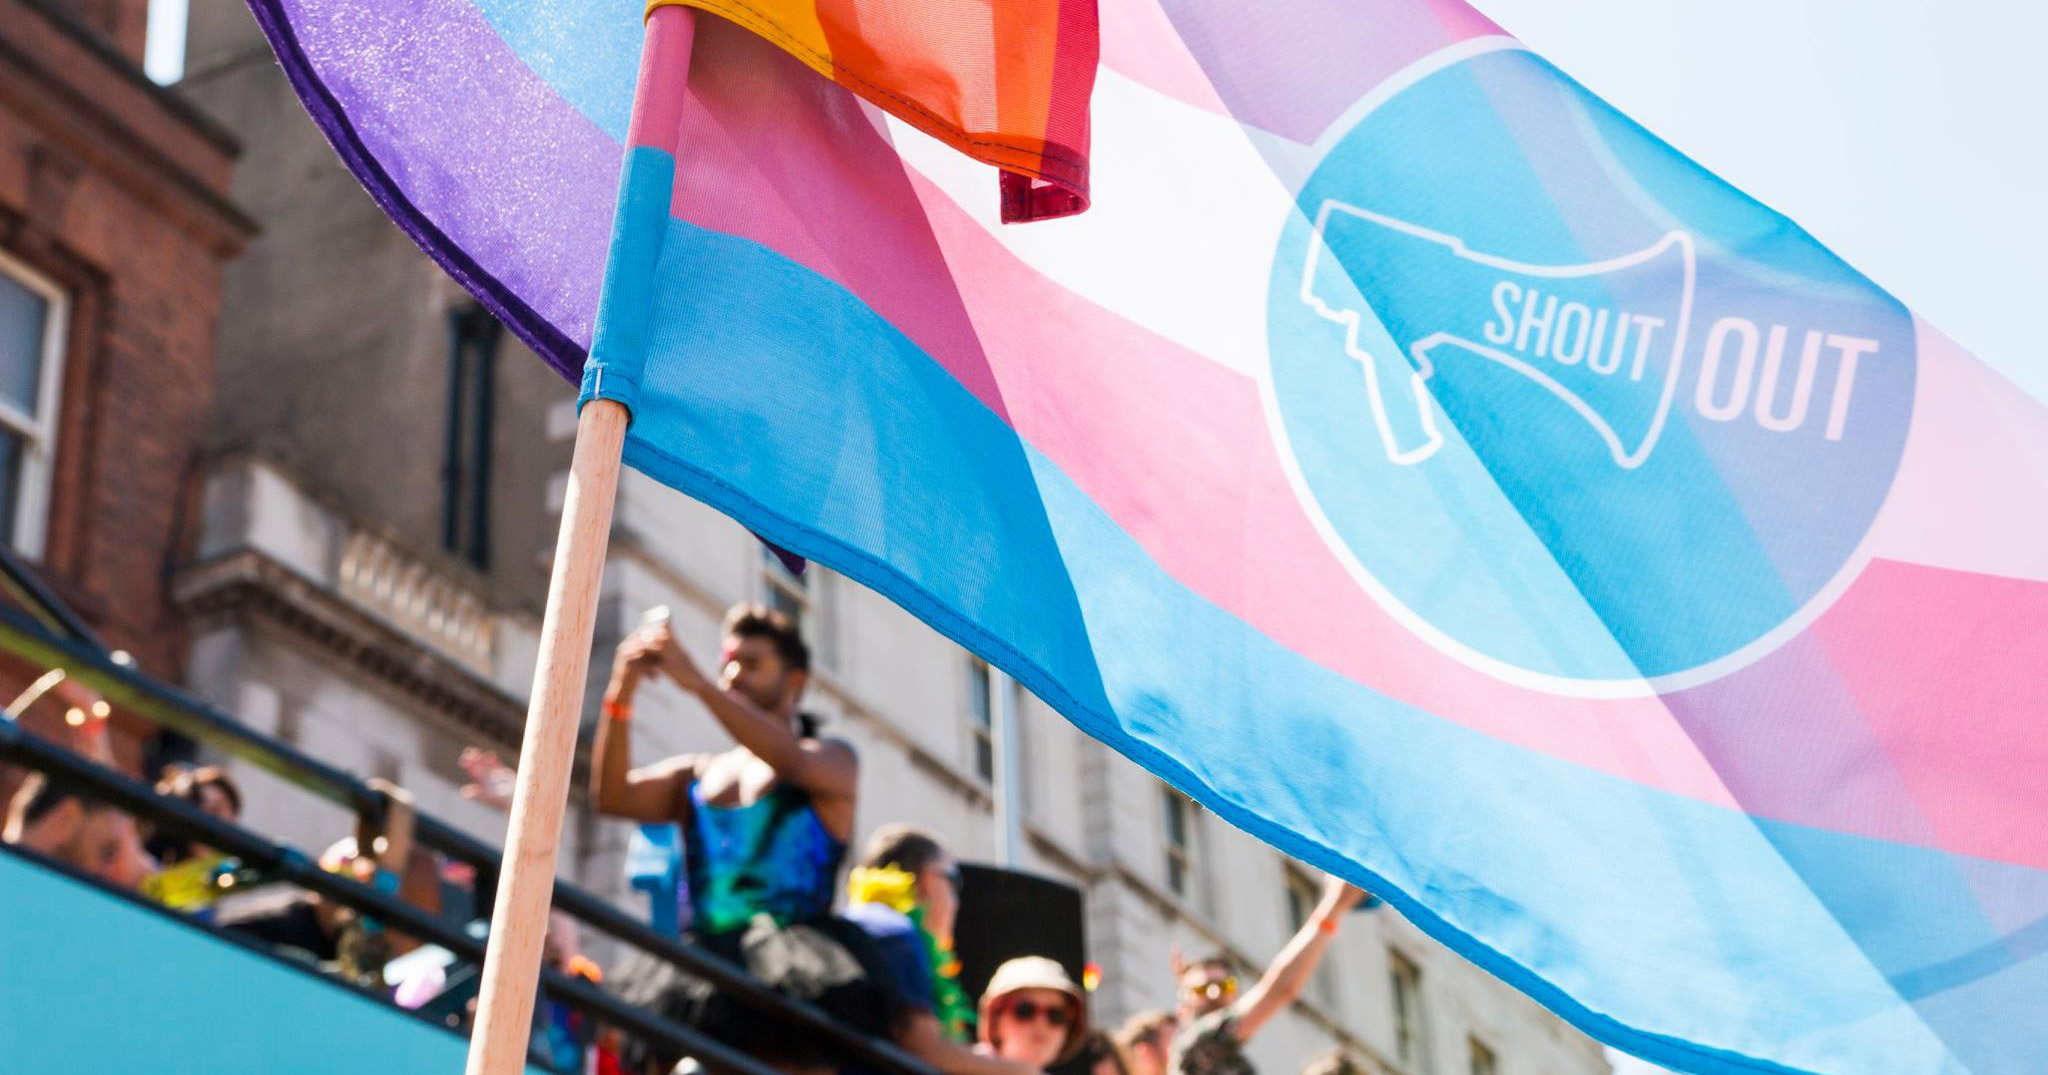 ShoutOut Trans Pride flag at Dublin Pride 2018